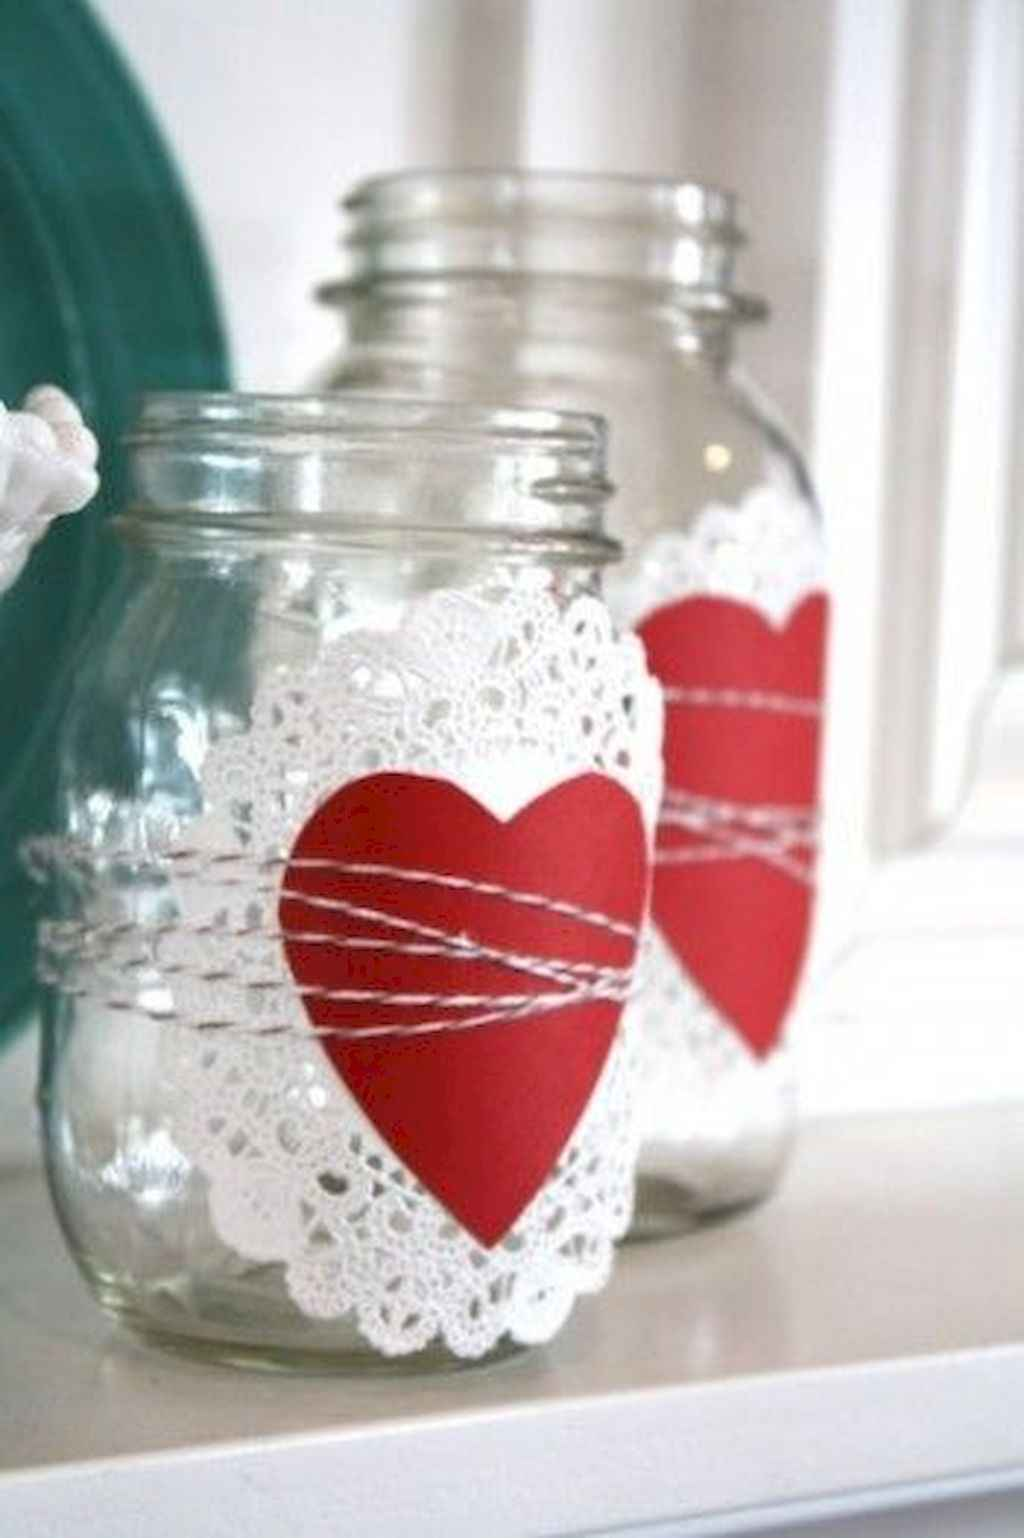 60 Romantic Valentines Crafts Ideas On A Budget (52)